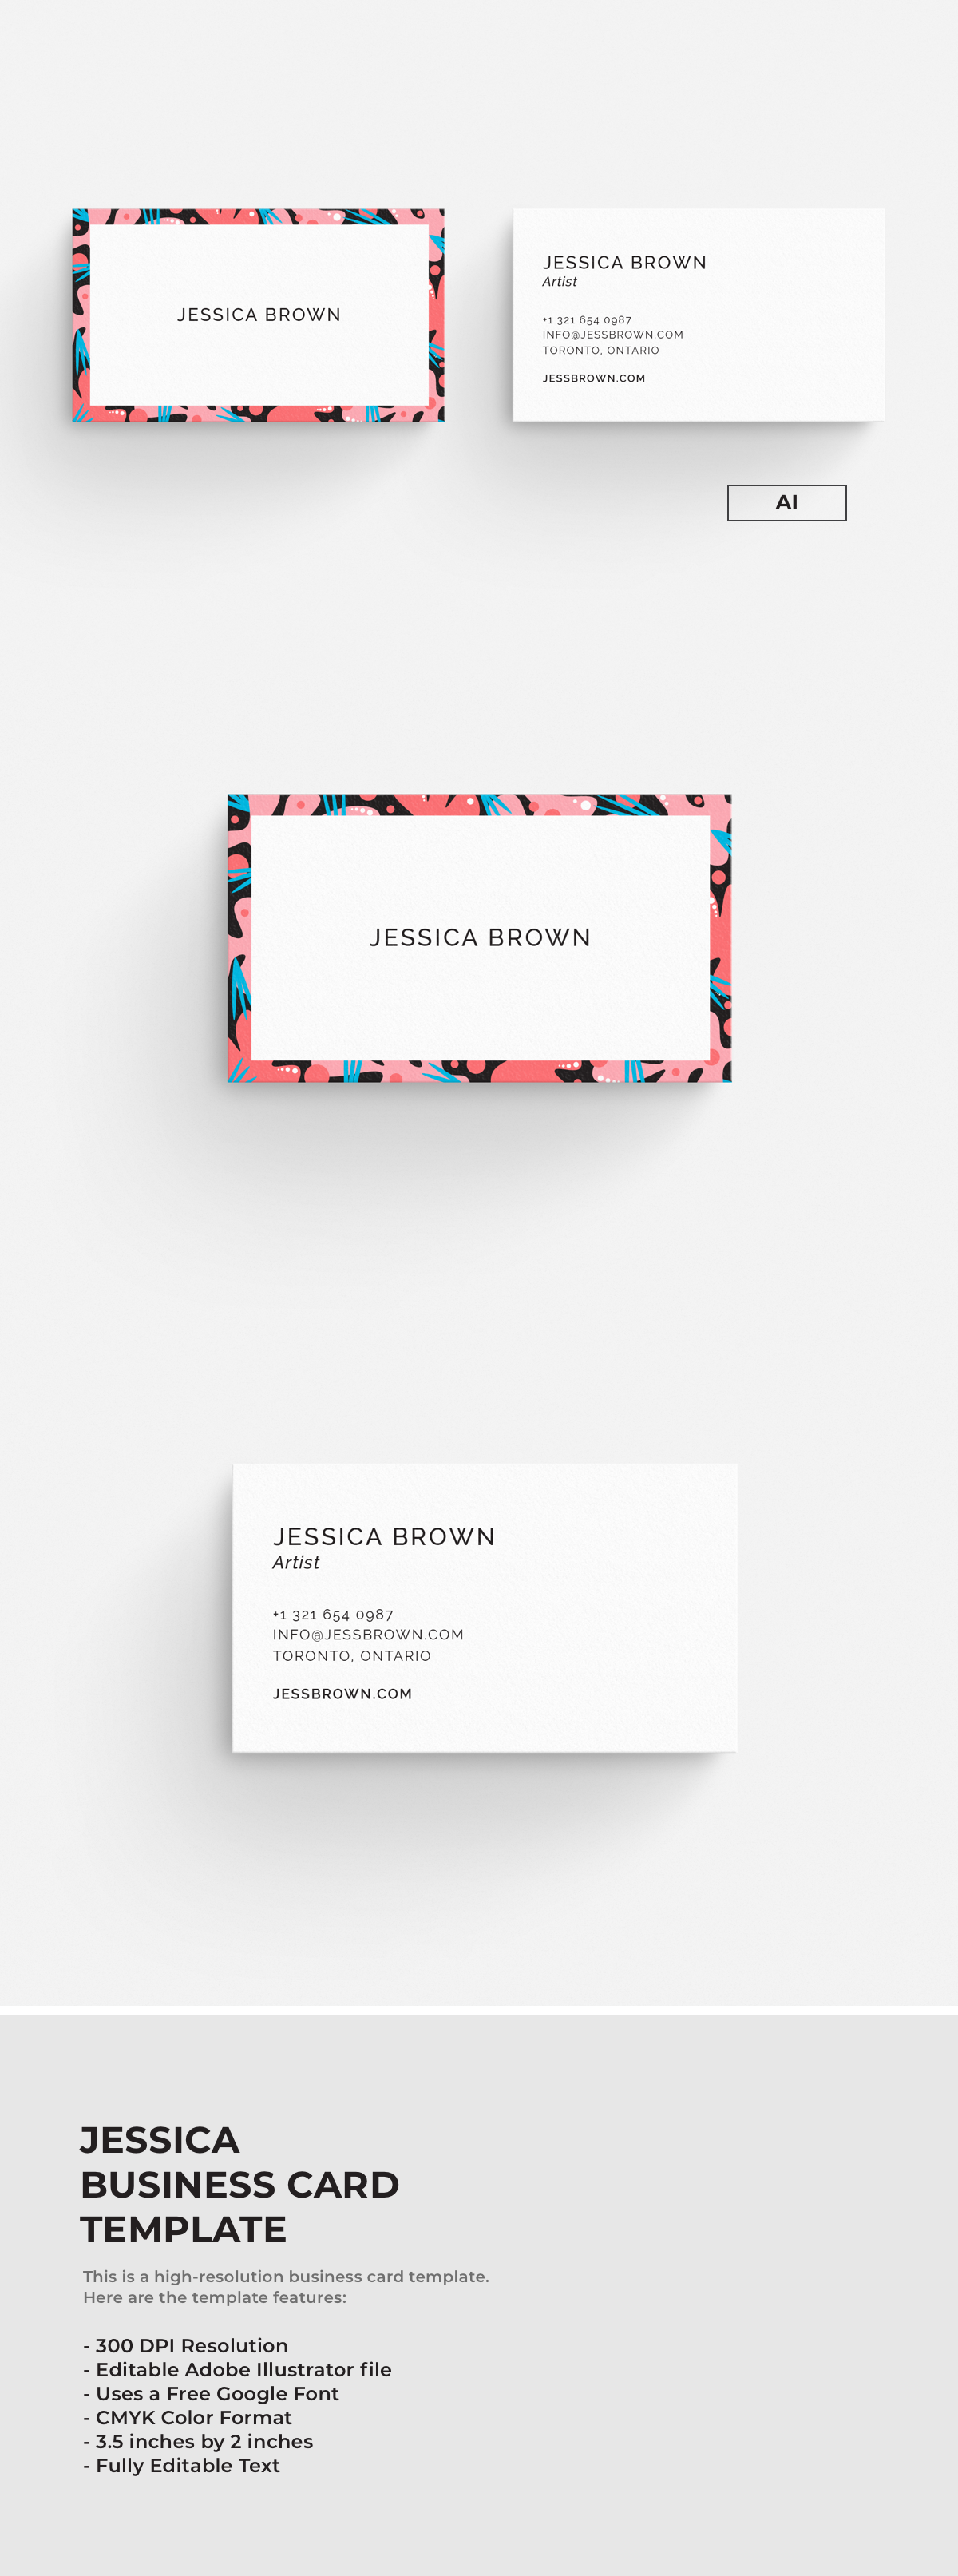 Jessica Business Card Template Graphic Design Business Card Business Card Graphic Illustration Business Cards